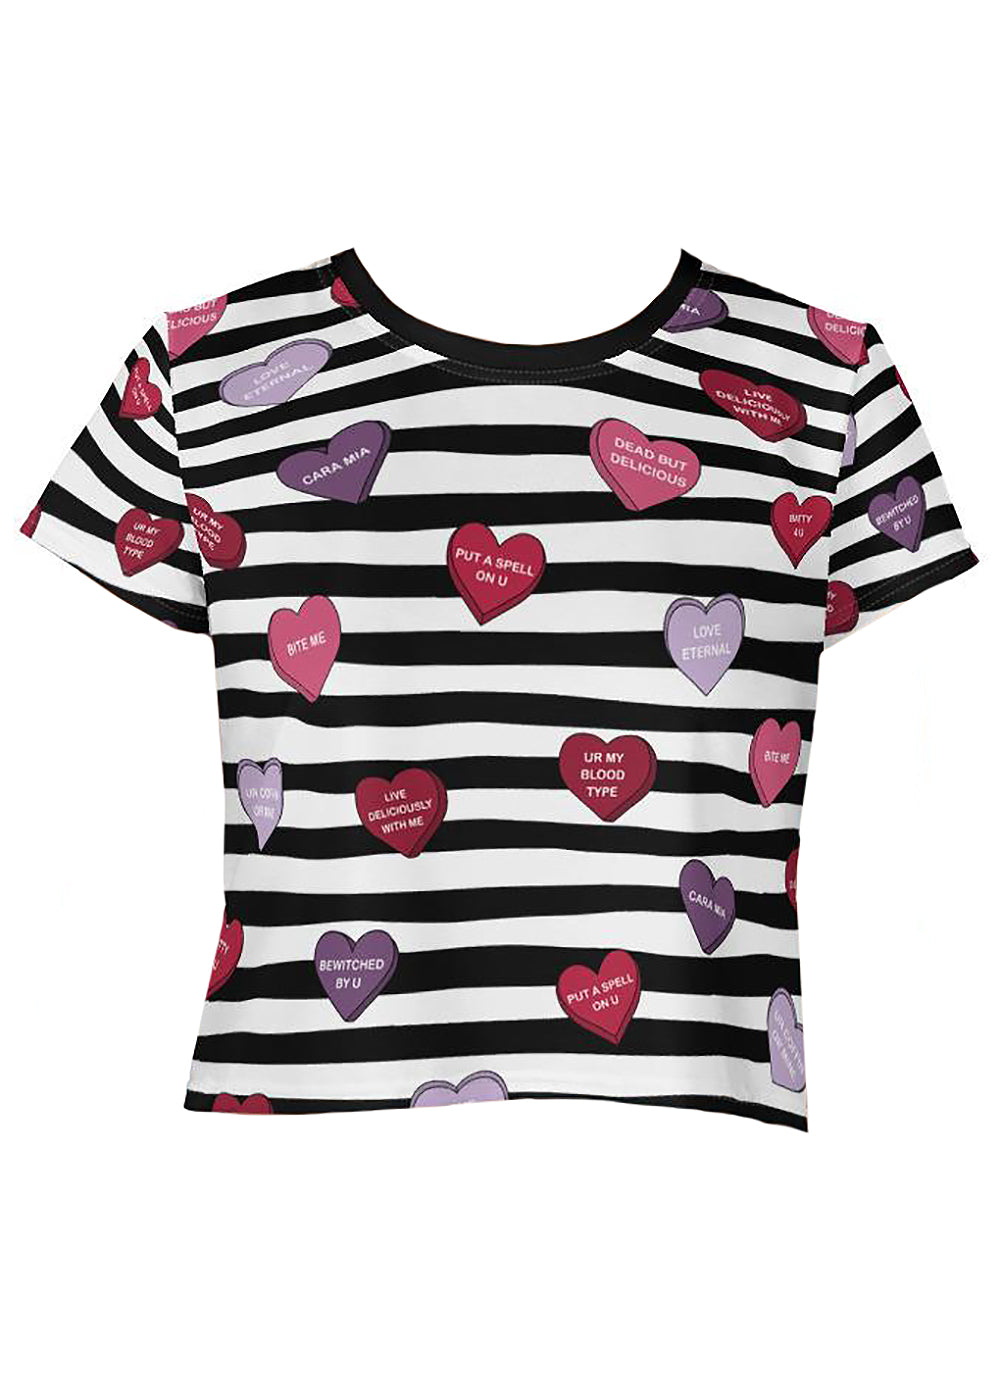 Spooky Conversation Hearts Graphic Crop Top